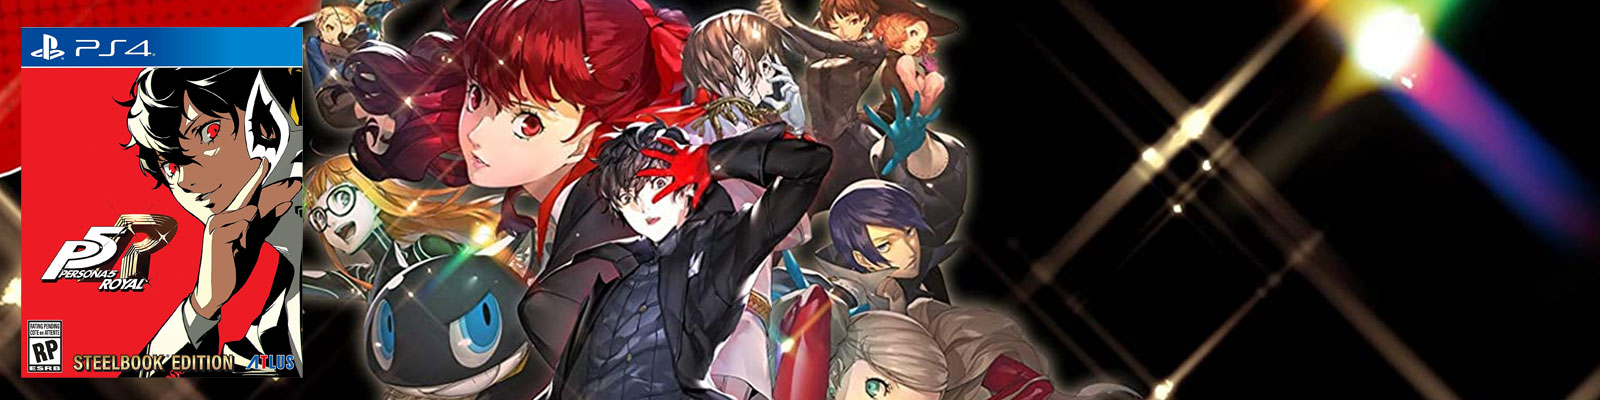 vgny-google-forms-reservation-persona-5.jpg